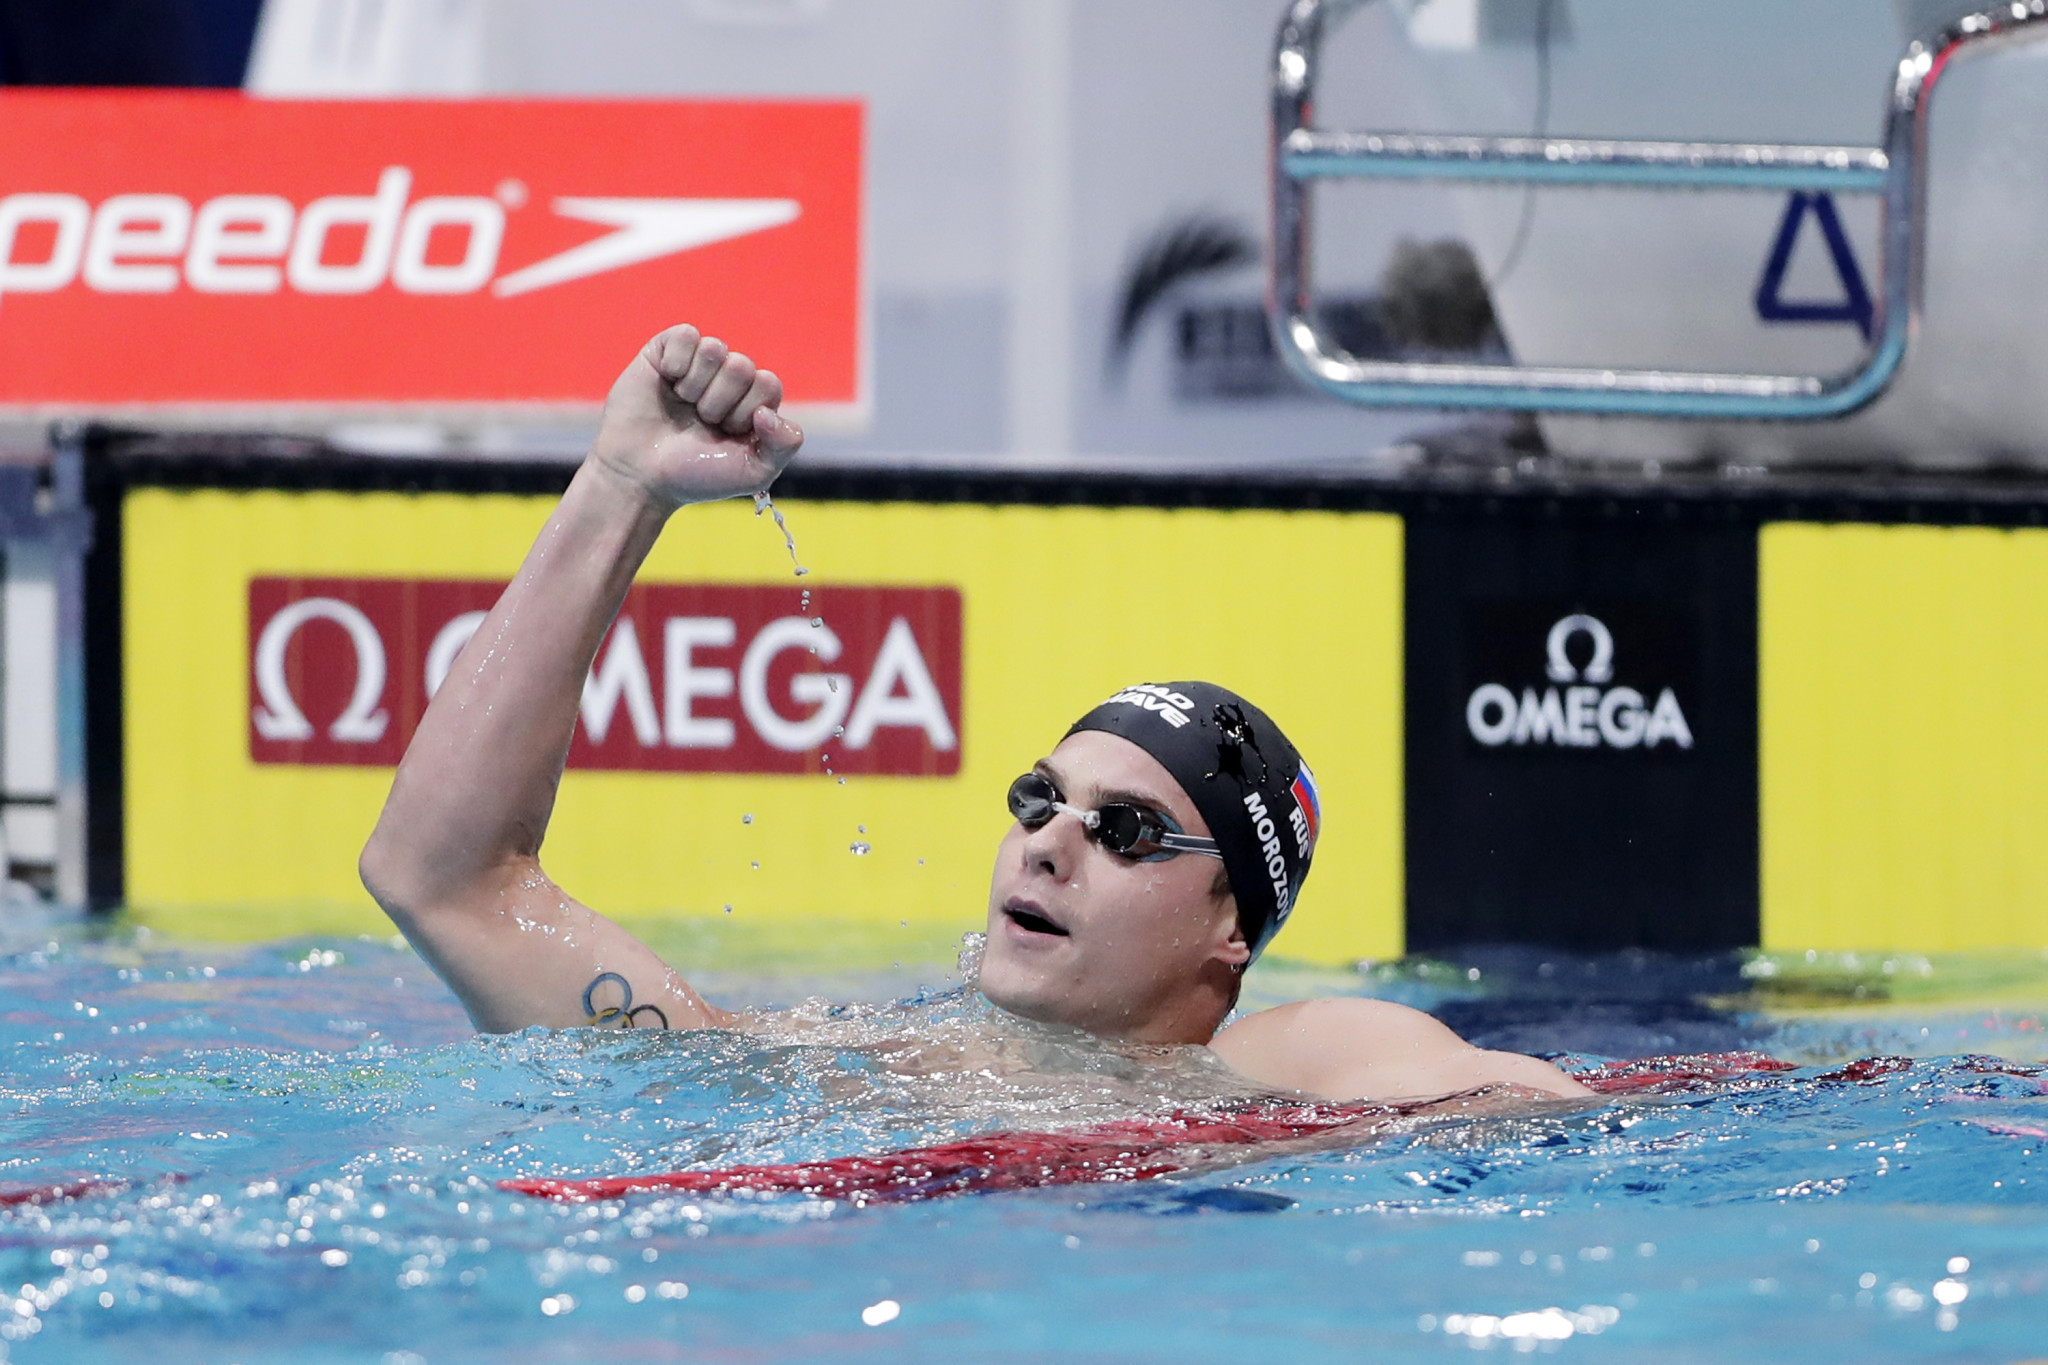 Morozov doubles up to complete FINA World Cup hat-trick in Tokyo